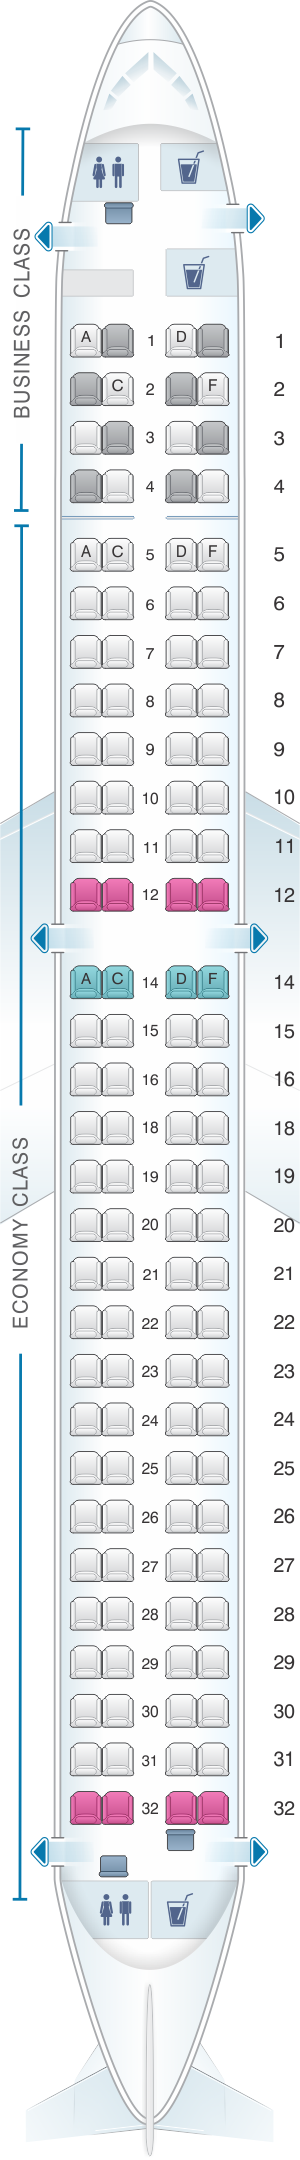 Seat map for Lufthansa Embraer E195